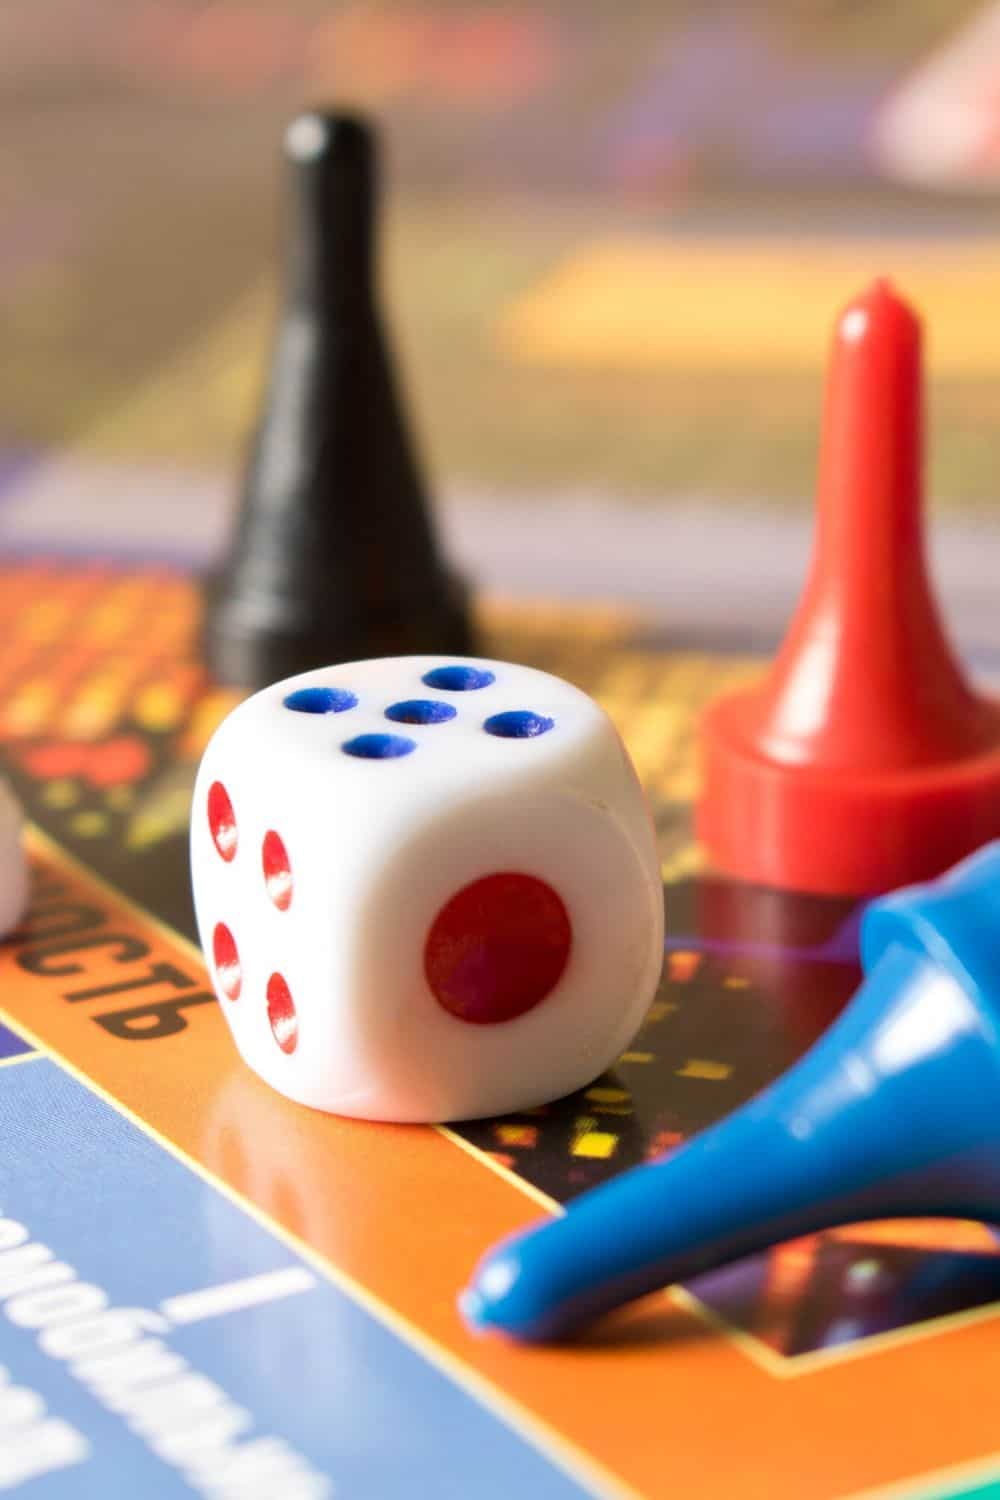 Ready, set, PLAY! It's family game night. Here are some of the Best Board Games For Family Game Night. Make some game night snacks and start playing.